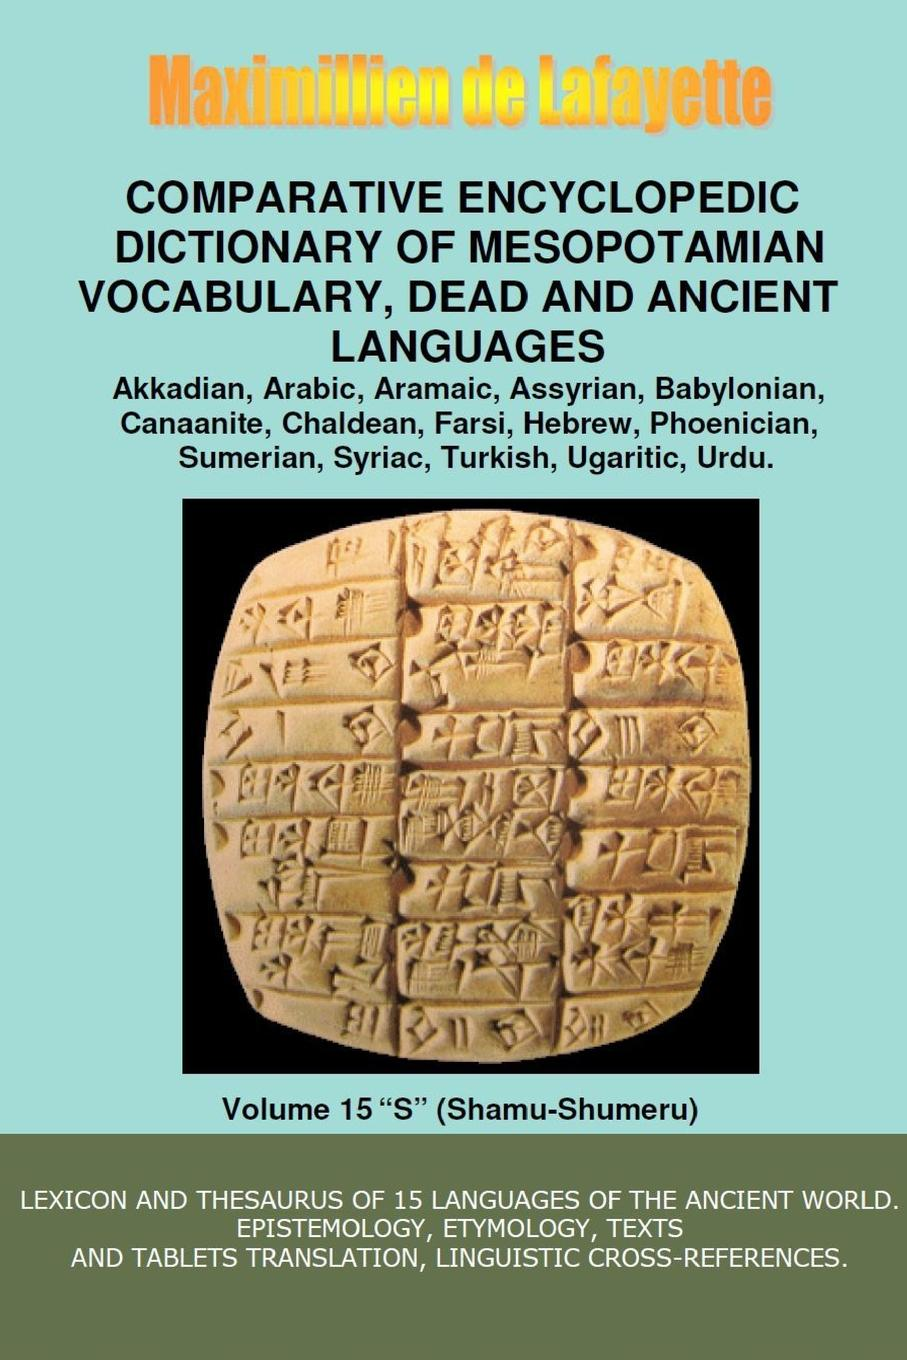 Maximillien De Lafayette V15.Comparative Encyclopedic Dictionary of Mesopotamian Vocabulary Dead . Ancient Languages larry a nichols george a mather alvin j schmidt encyclopedic dictionary of cults sects and world religions